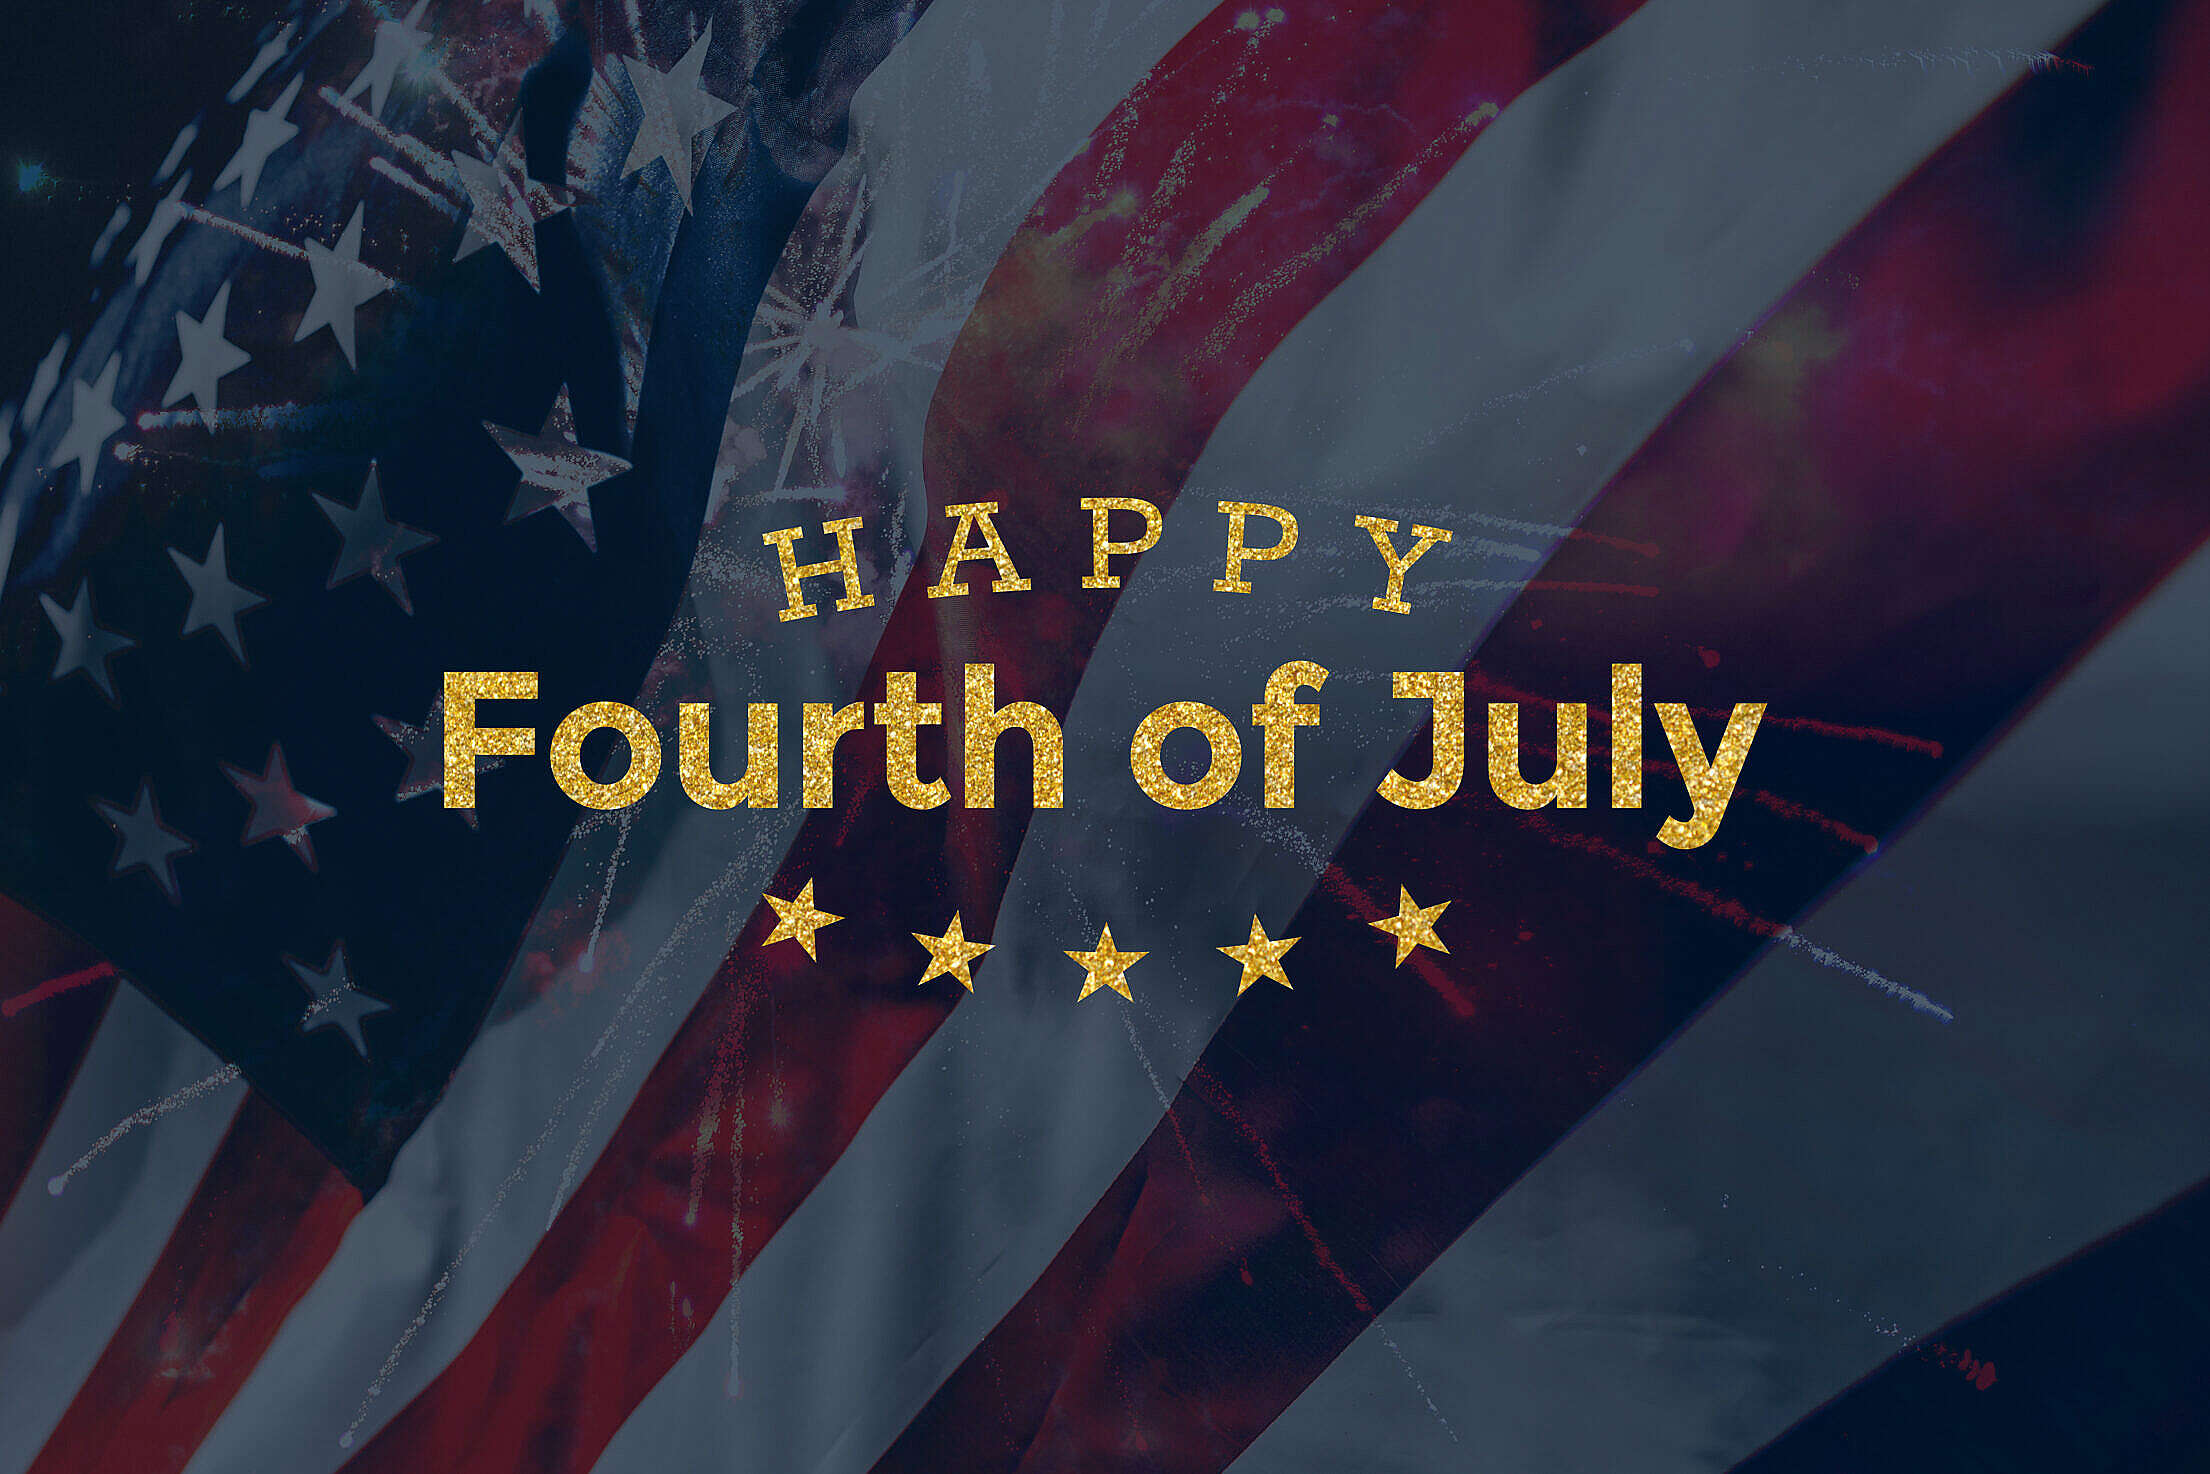 Happy Fourth of July Lettering Free Stock Photo